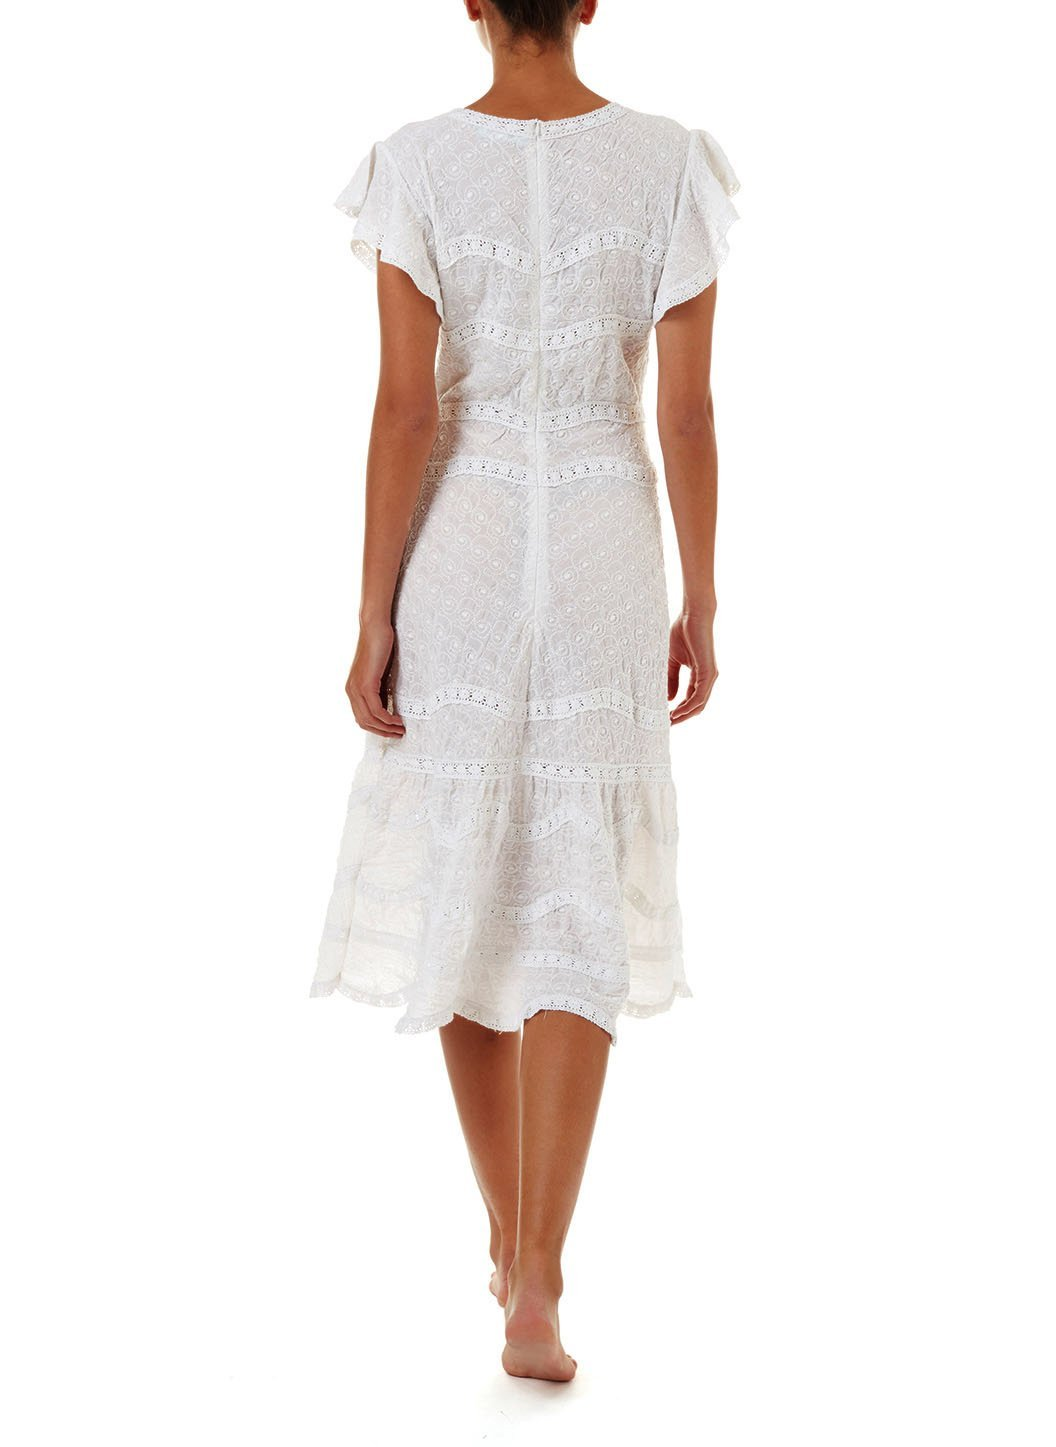 louisa white highneck midi tea dress 2019 B